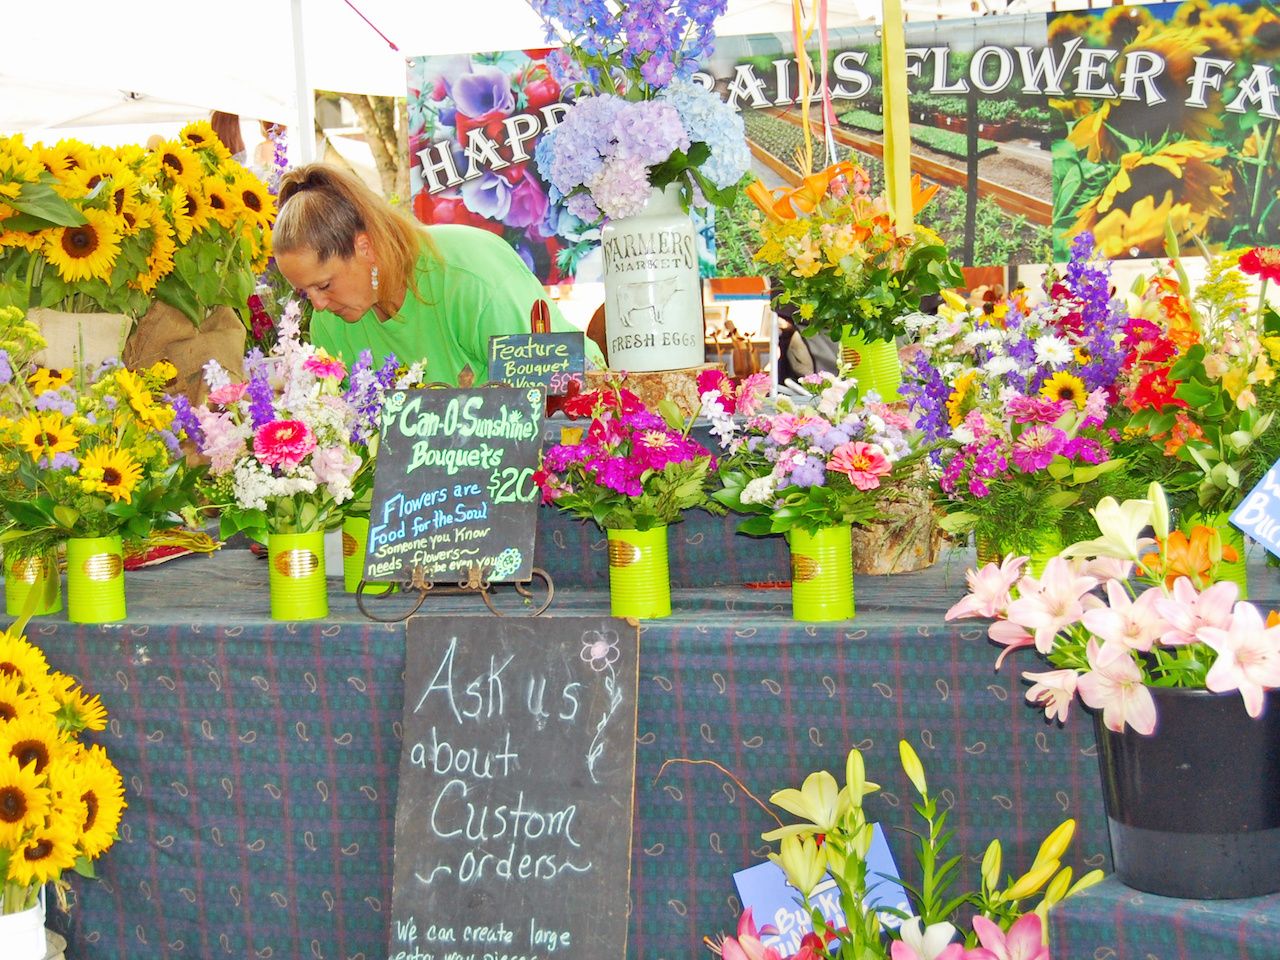 The Happy Trails Flower Farm tent at the Market at Pepper Place offer bouquets to brighten up your weekend!